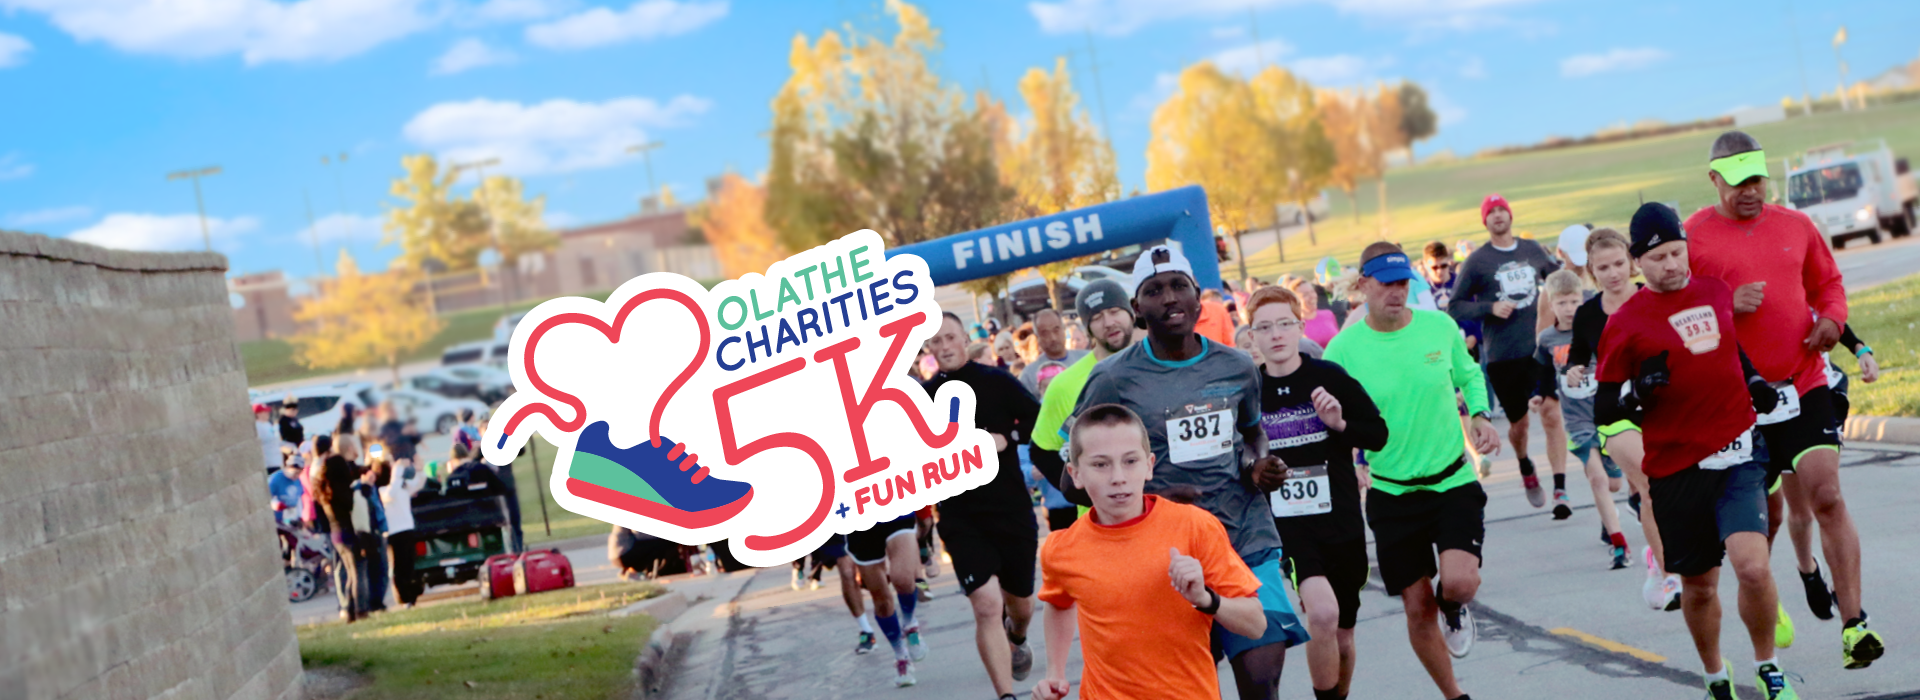 Olathe Charities 5k Run